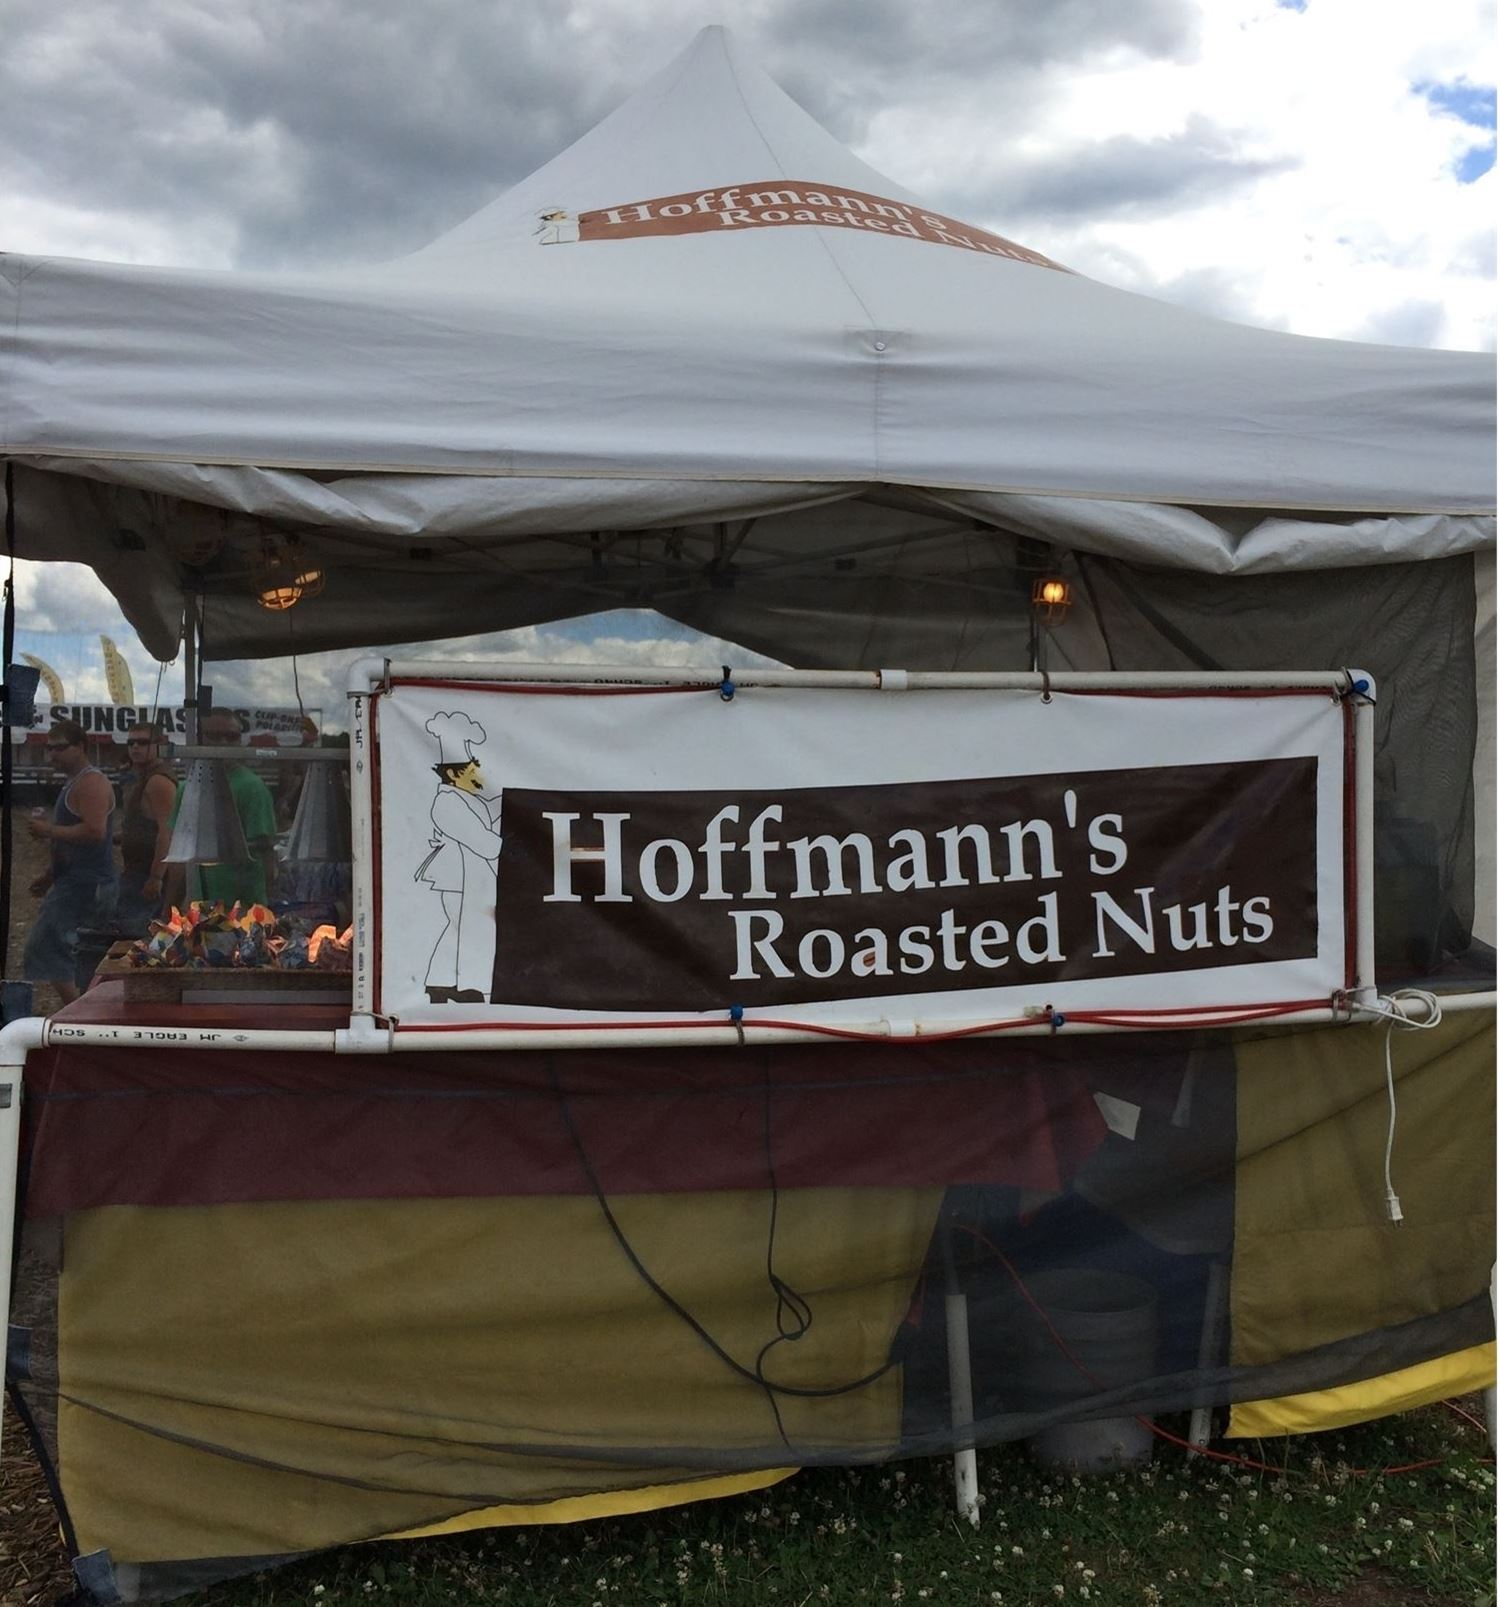 Hoffman's Roasted Nuts